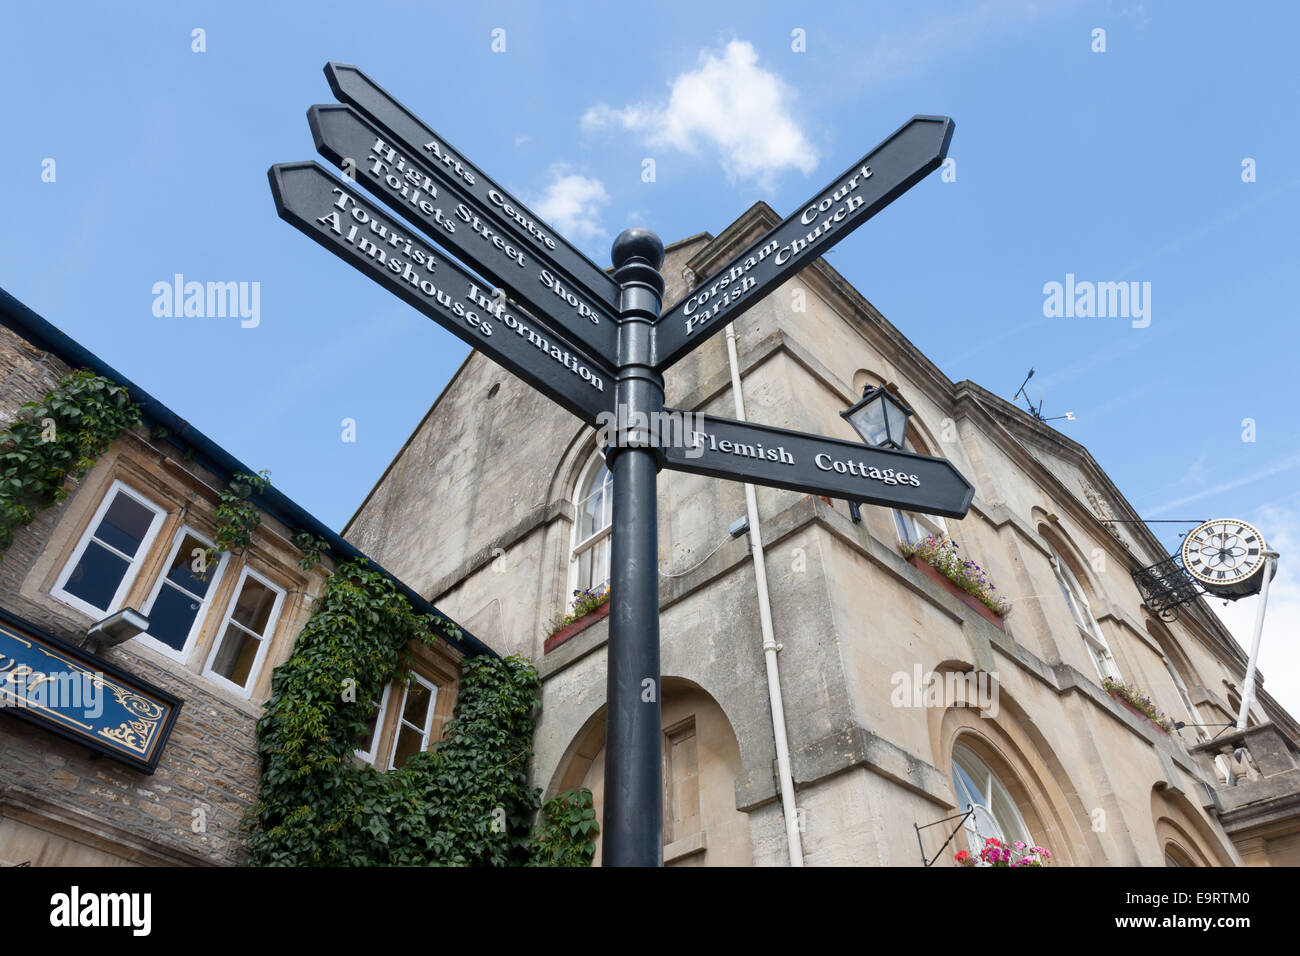 The Town Hall, Flemish Weaver public house and signpost in Corsham, Wiltshire Stock Photo